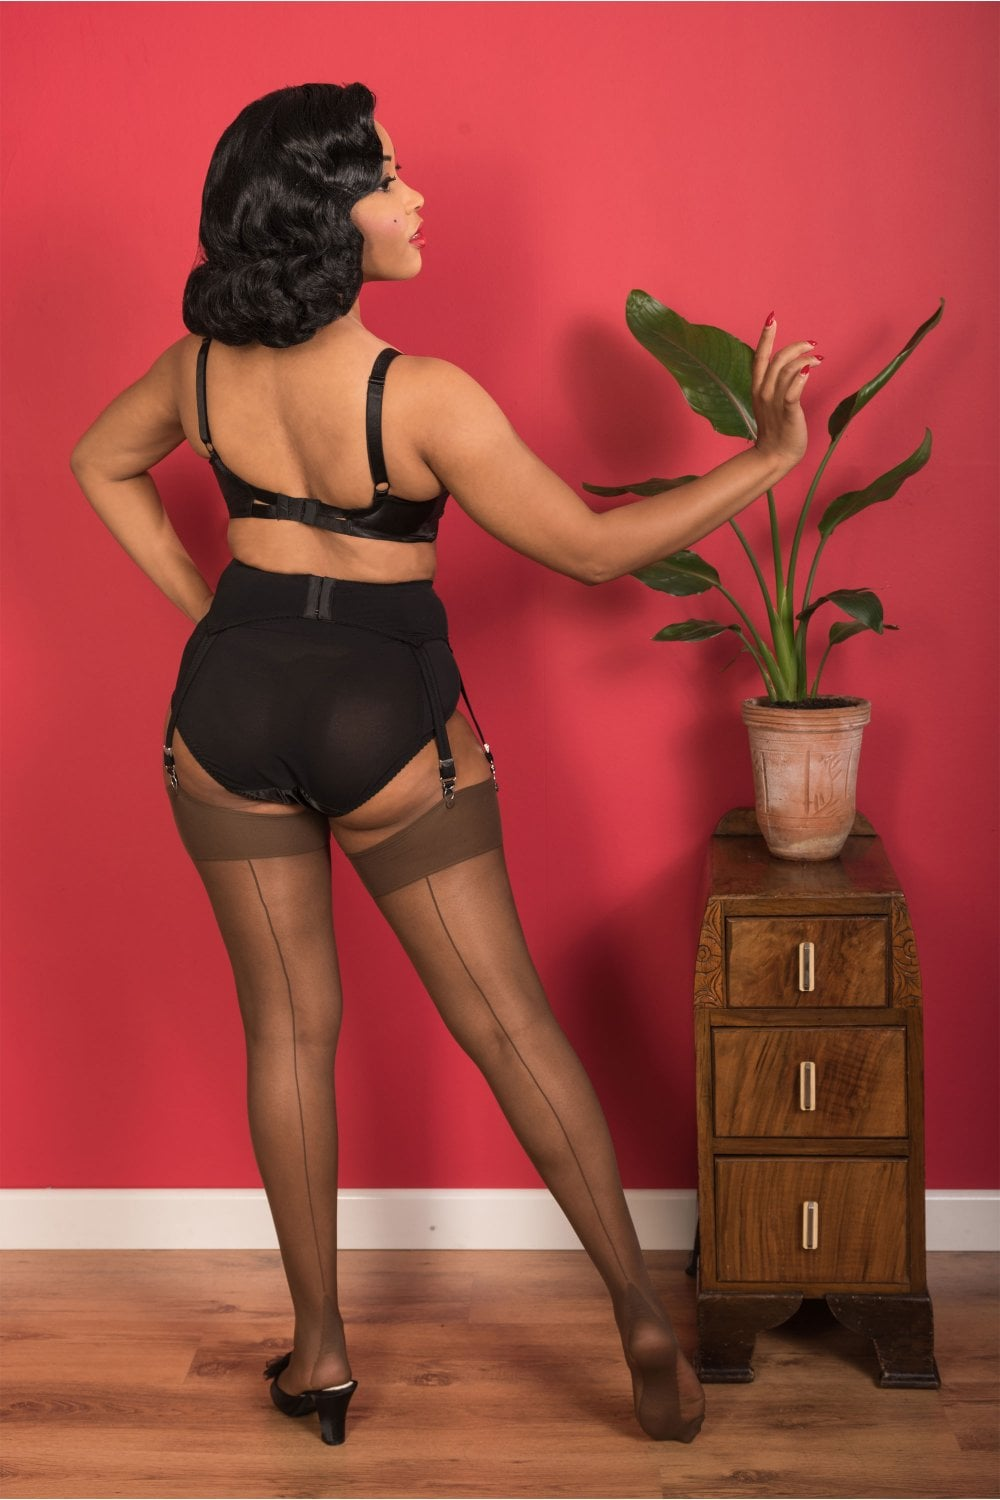 Glamour images stockings